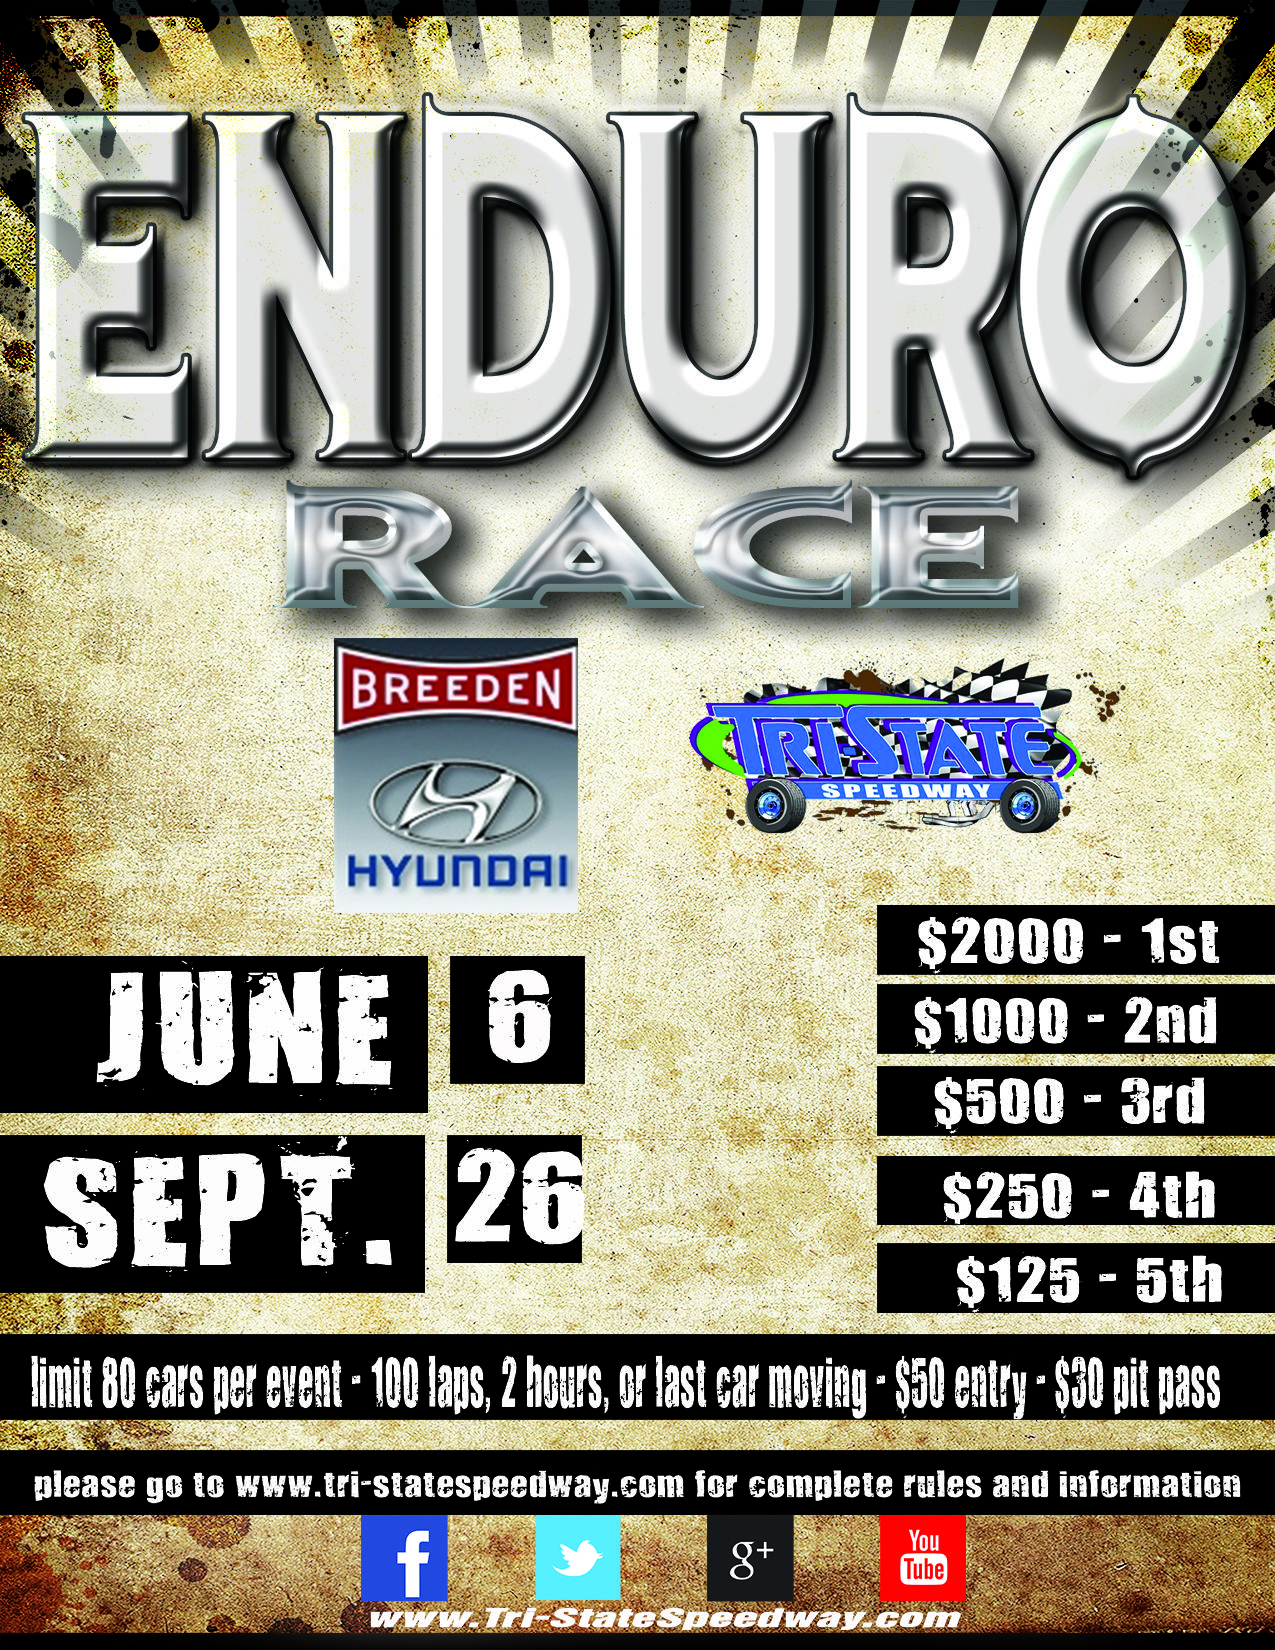 Enduro Race #1